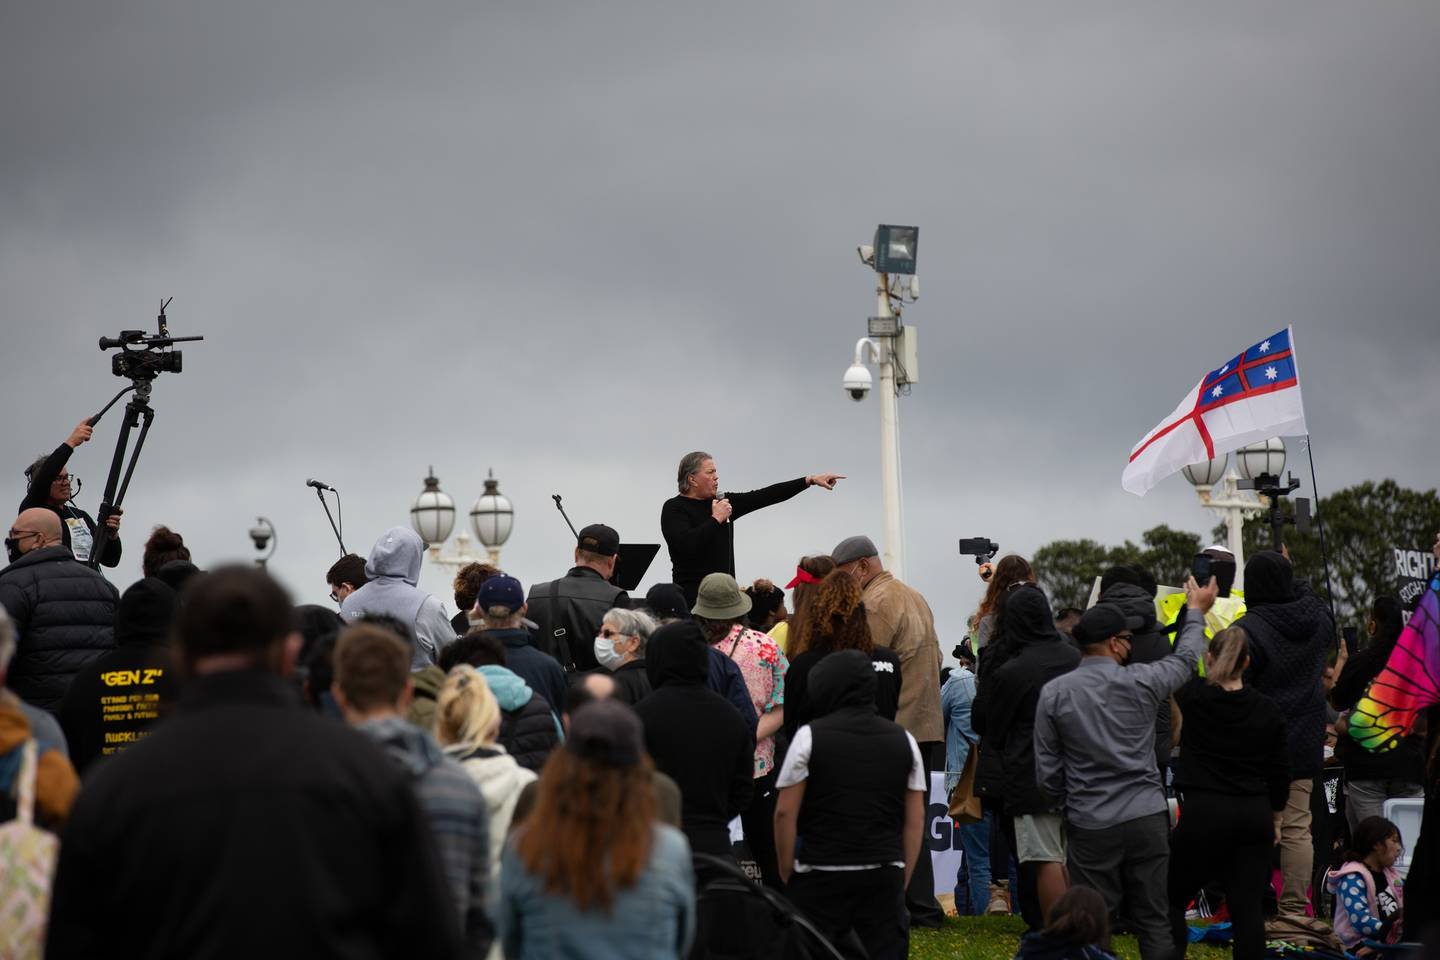 Destiny Church leader Brian Tamaki addressed a crowd of around 1000 people that gathered on Saturday in Auckland. Photo / Sylvie Whinray